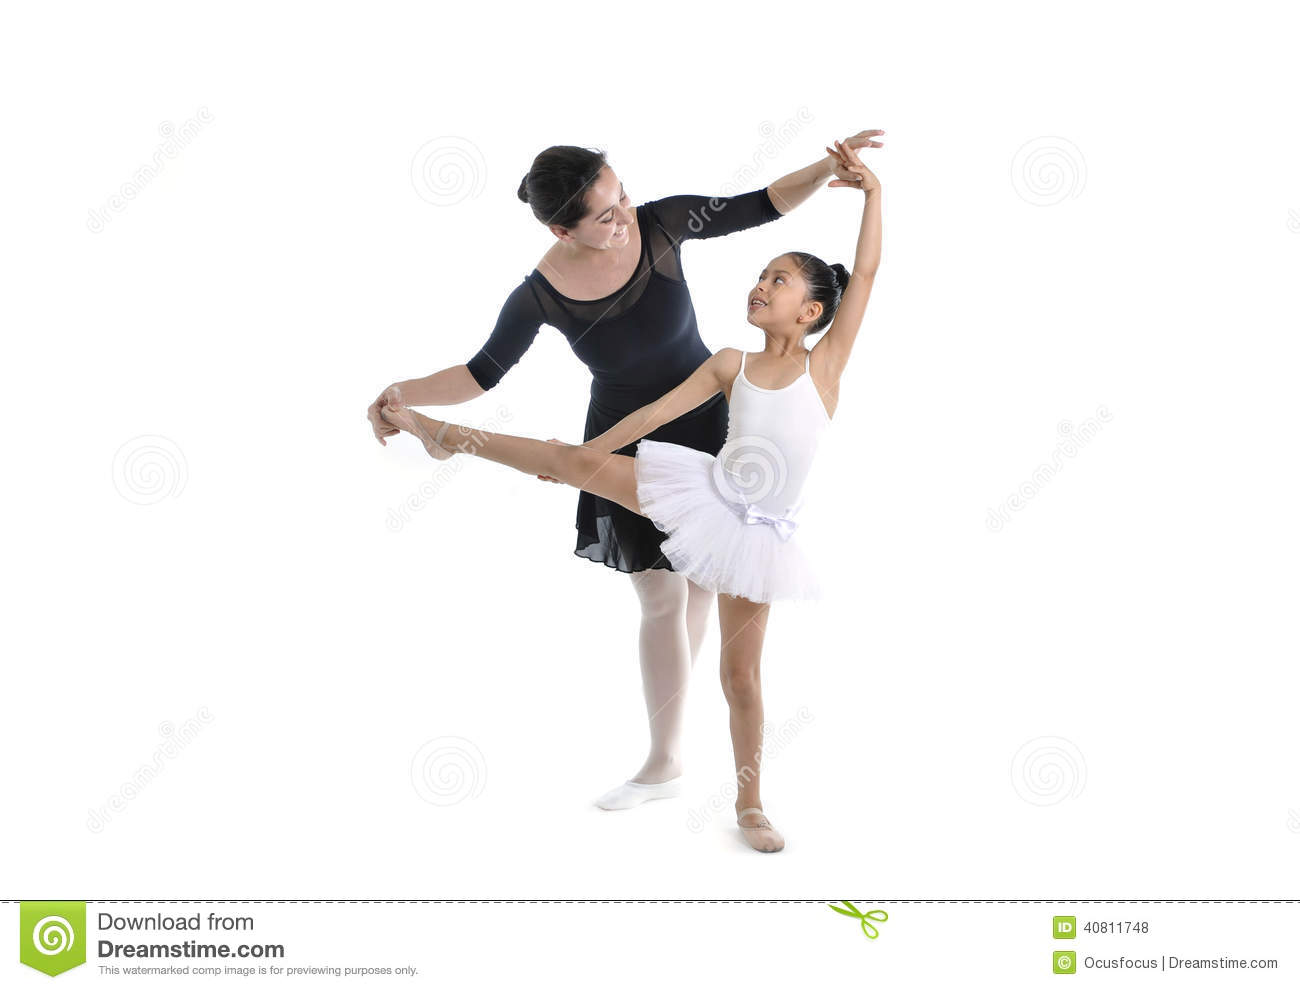 learn how to dance ballet